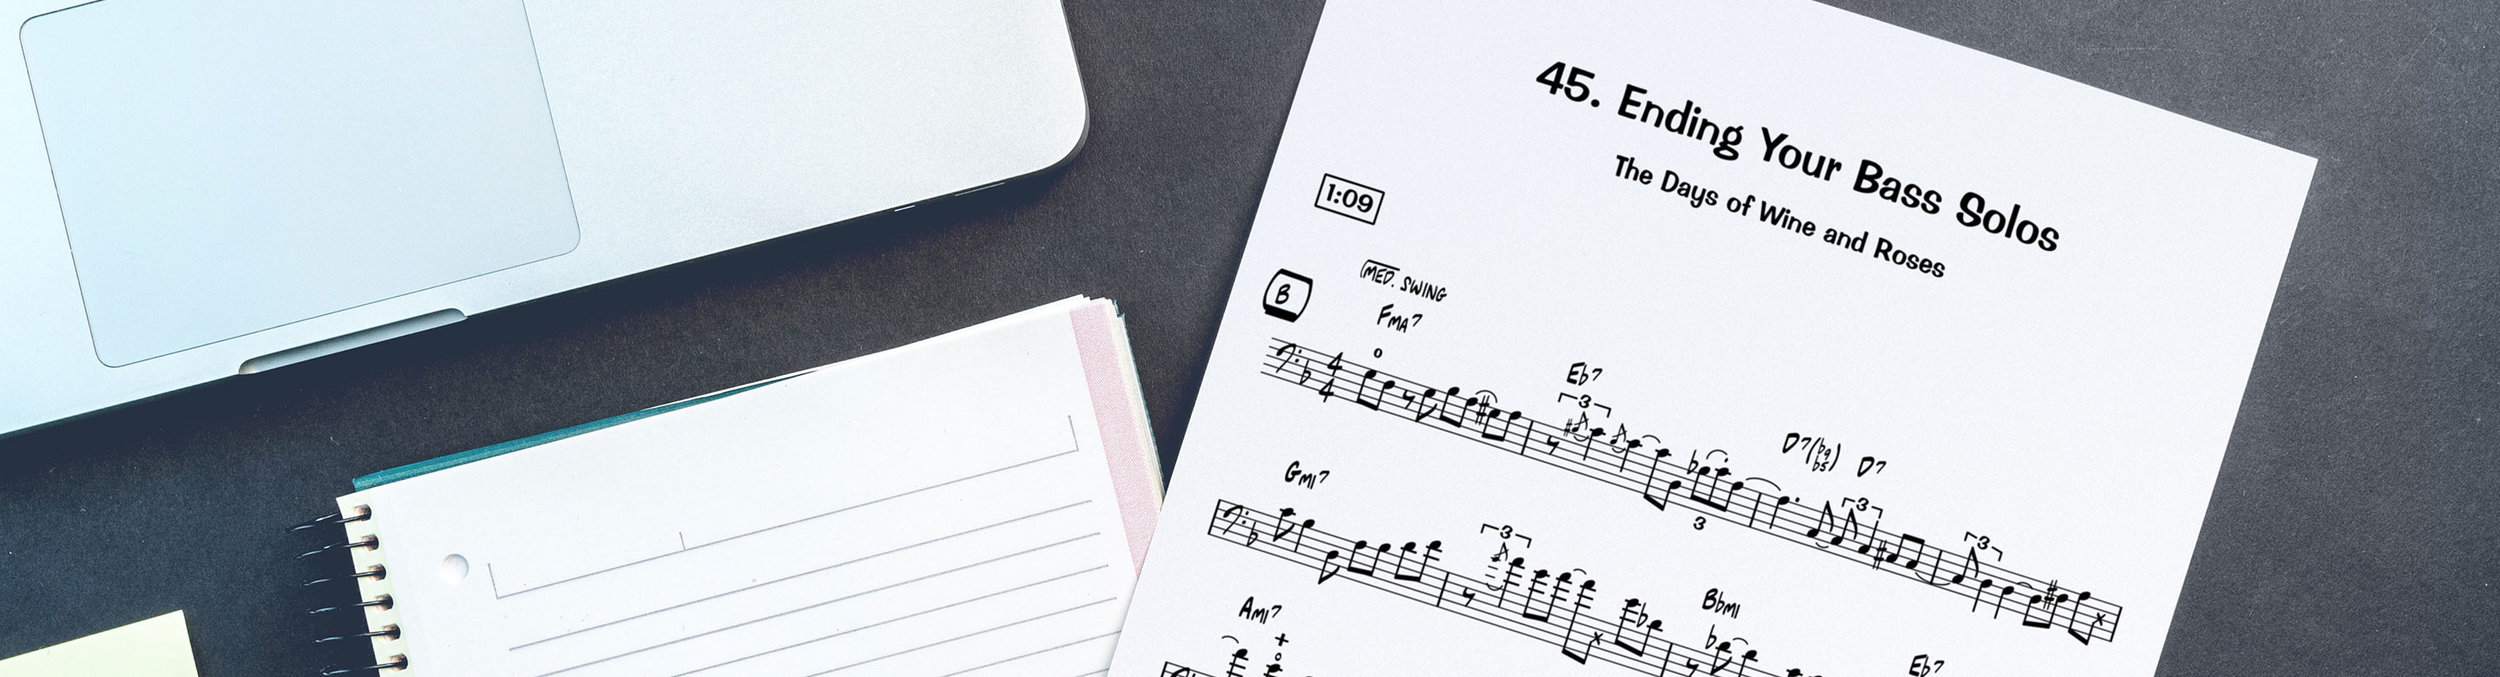 Many of our courses contain detailed transcriptions and play-along tracks to help you get the most from the lessons.